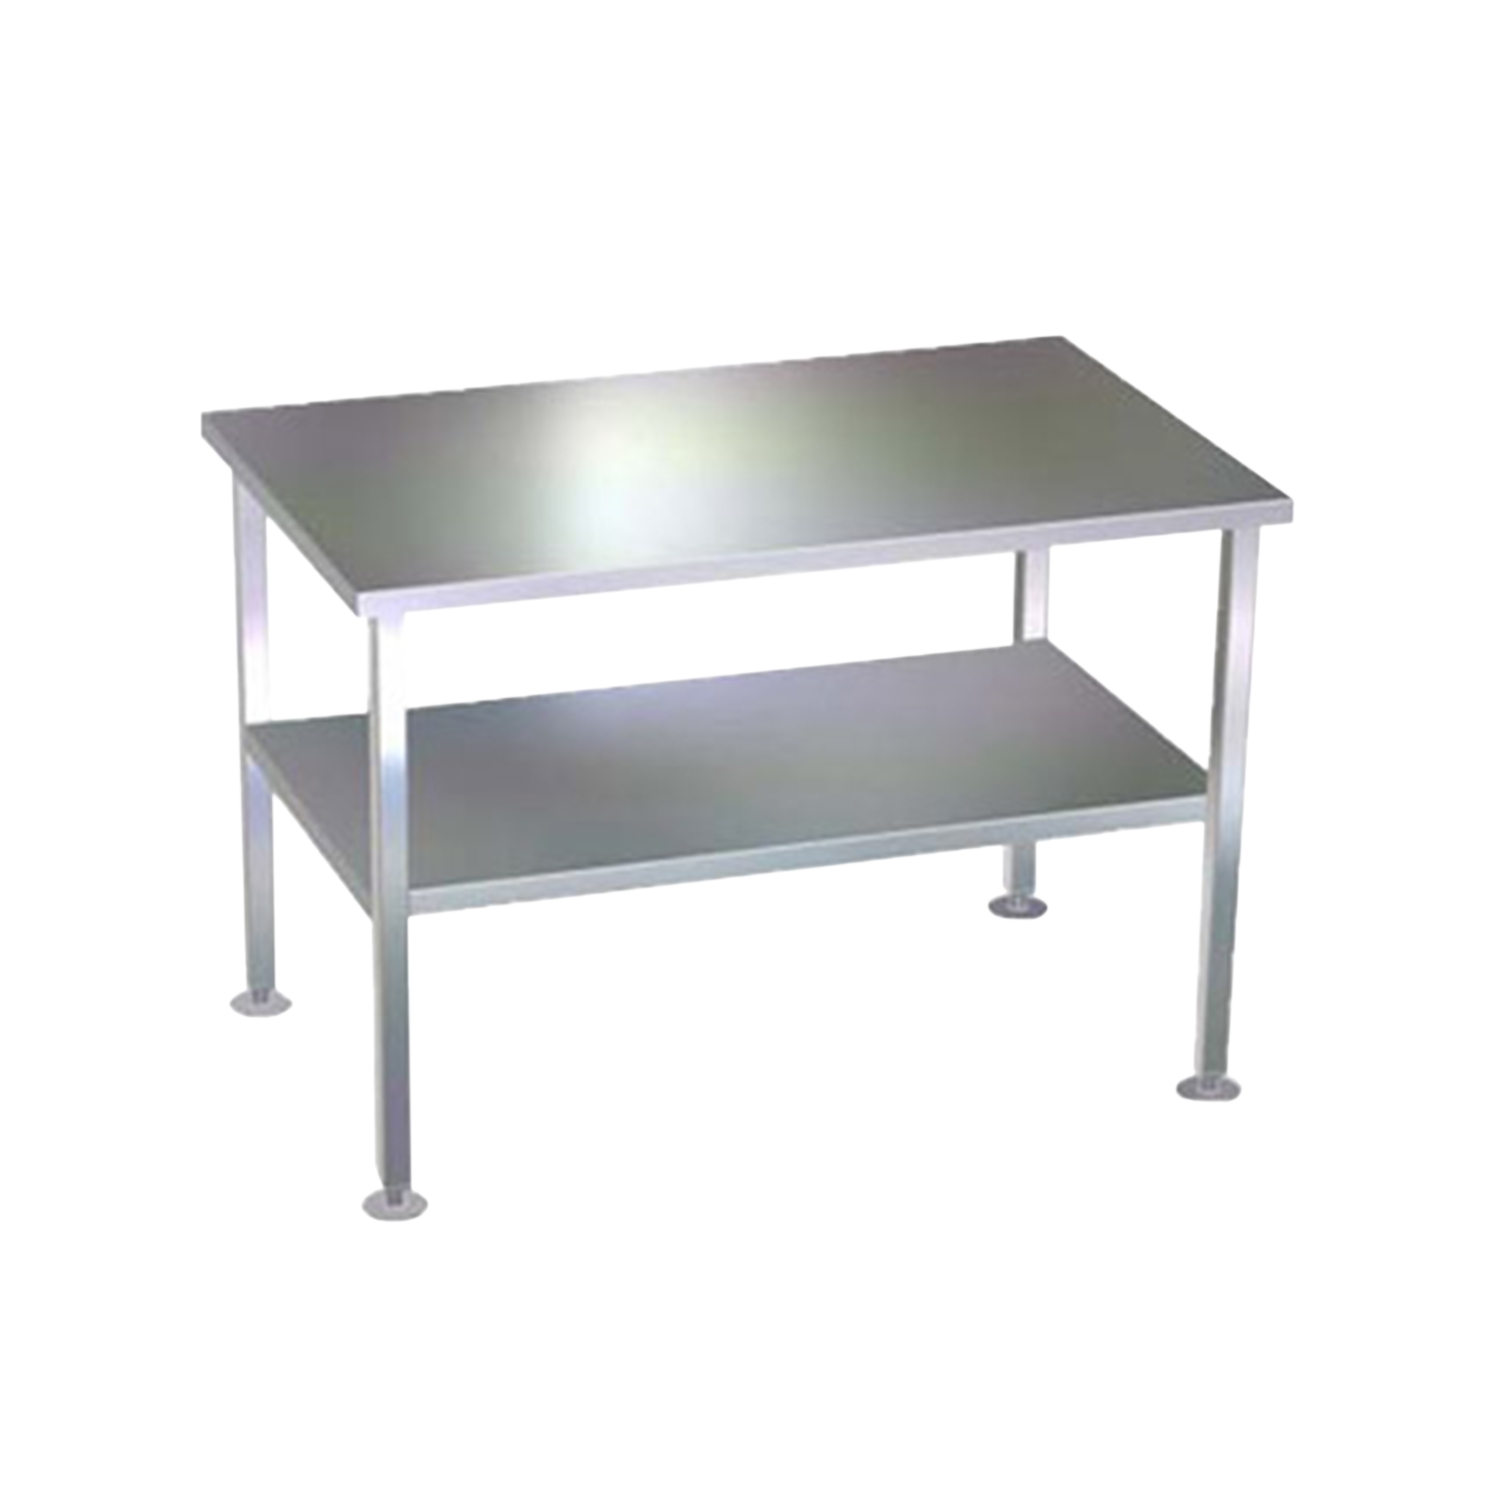 DRE Stainless Steel Work Tables and Instrument Stands